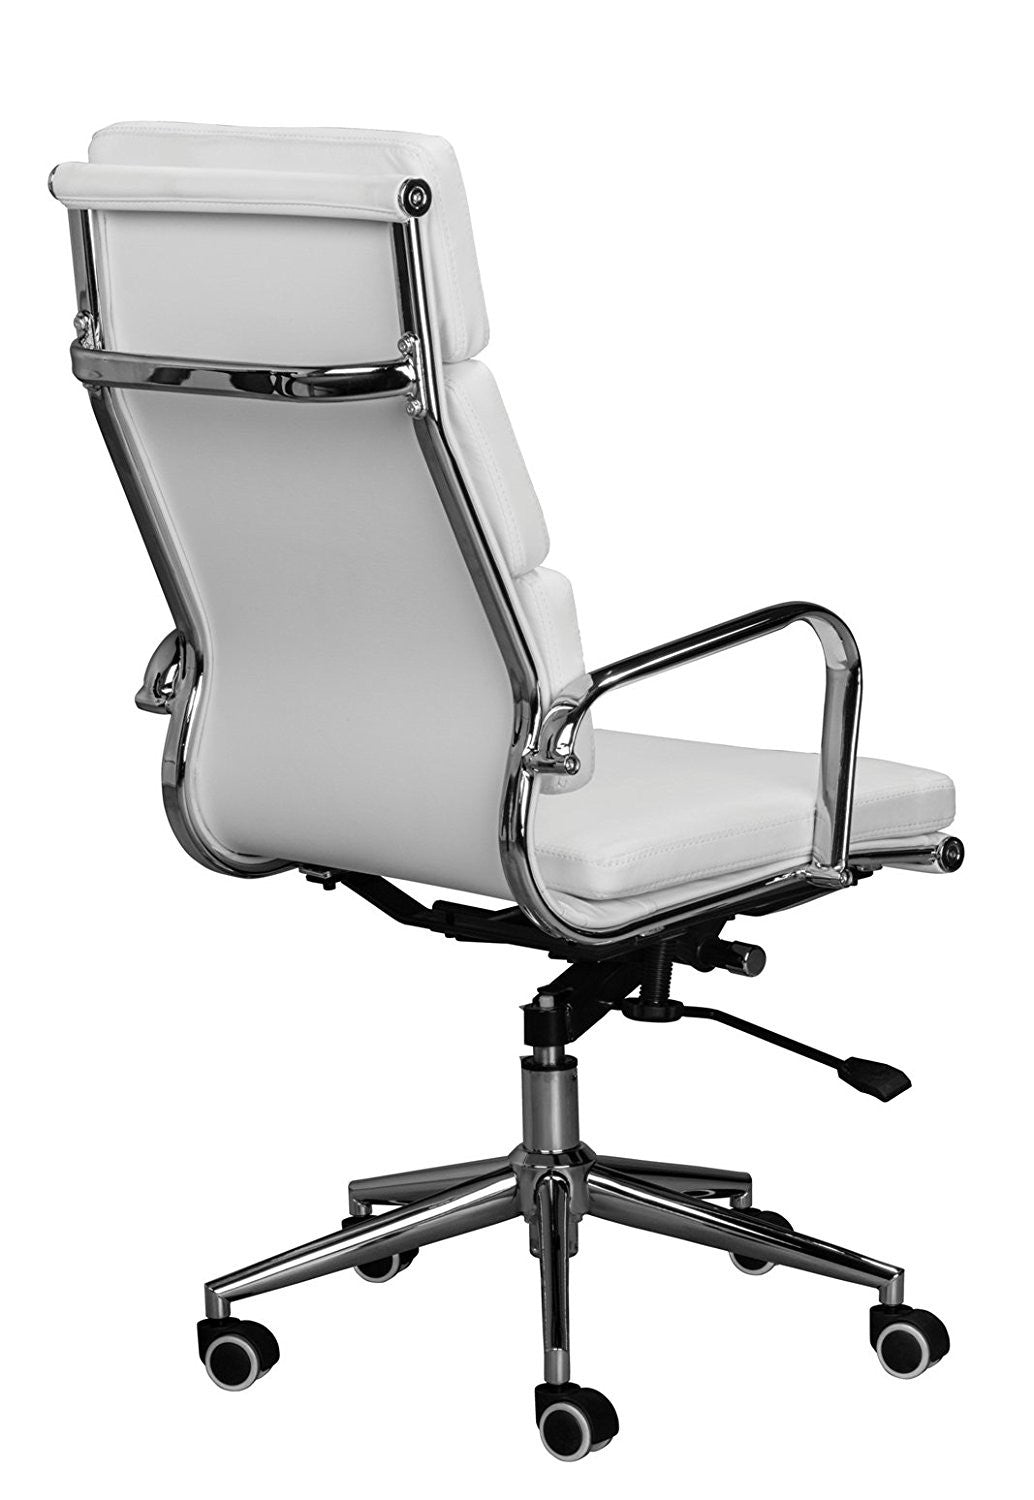 Eames Replica White Pu Leather High Back Cusion Office